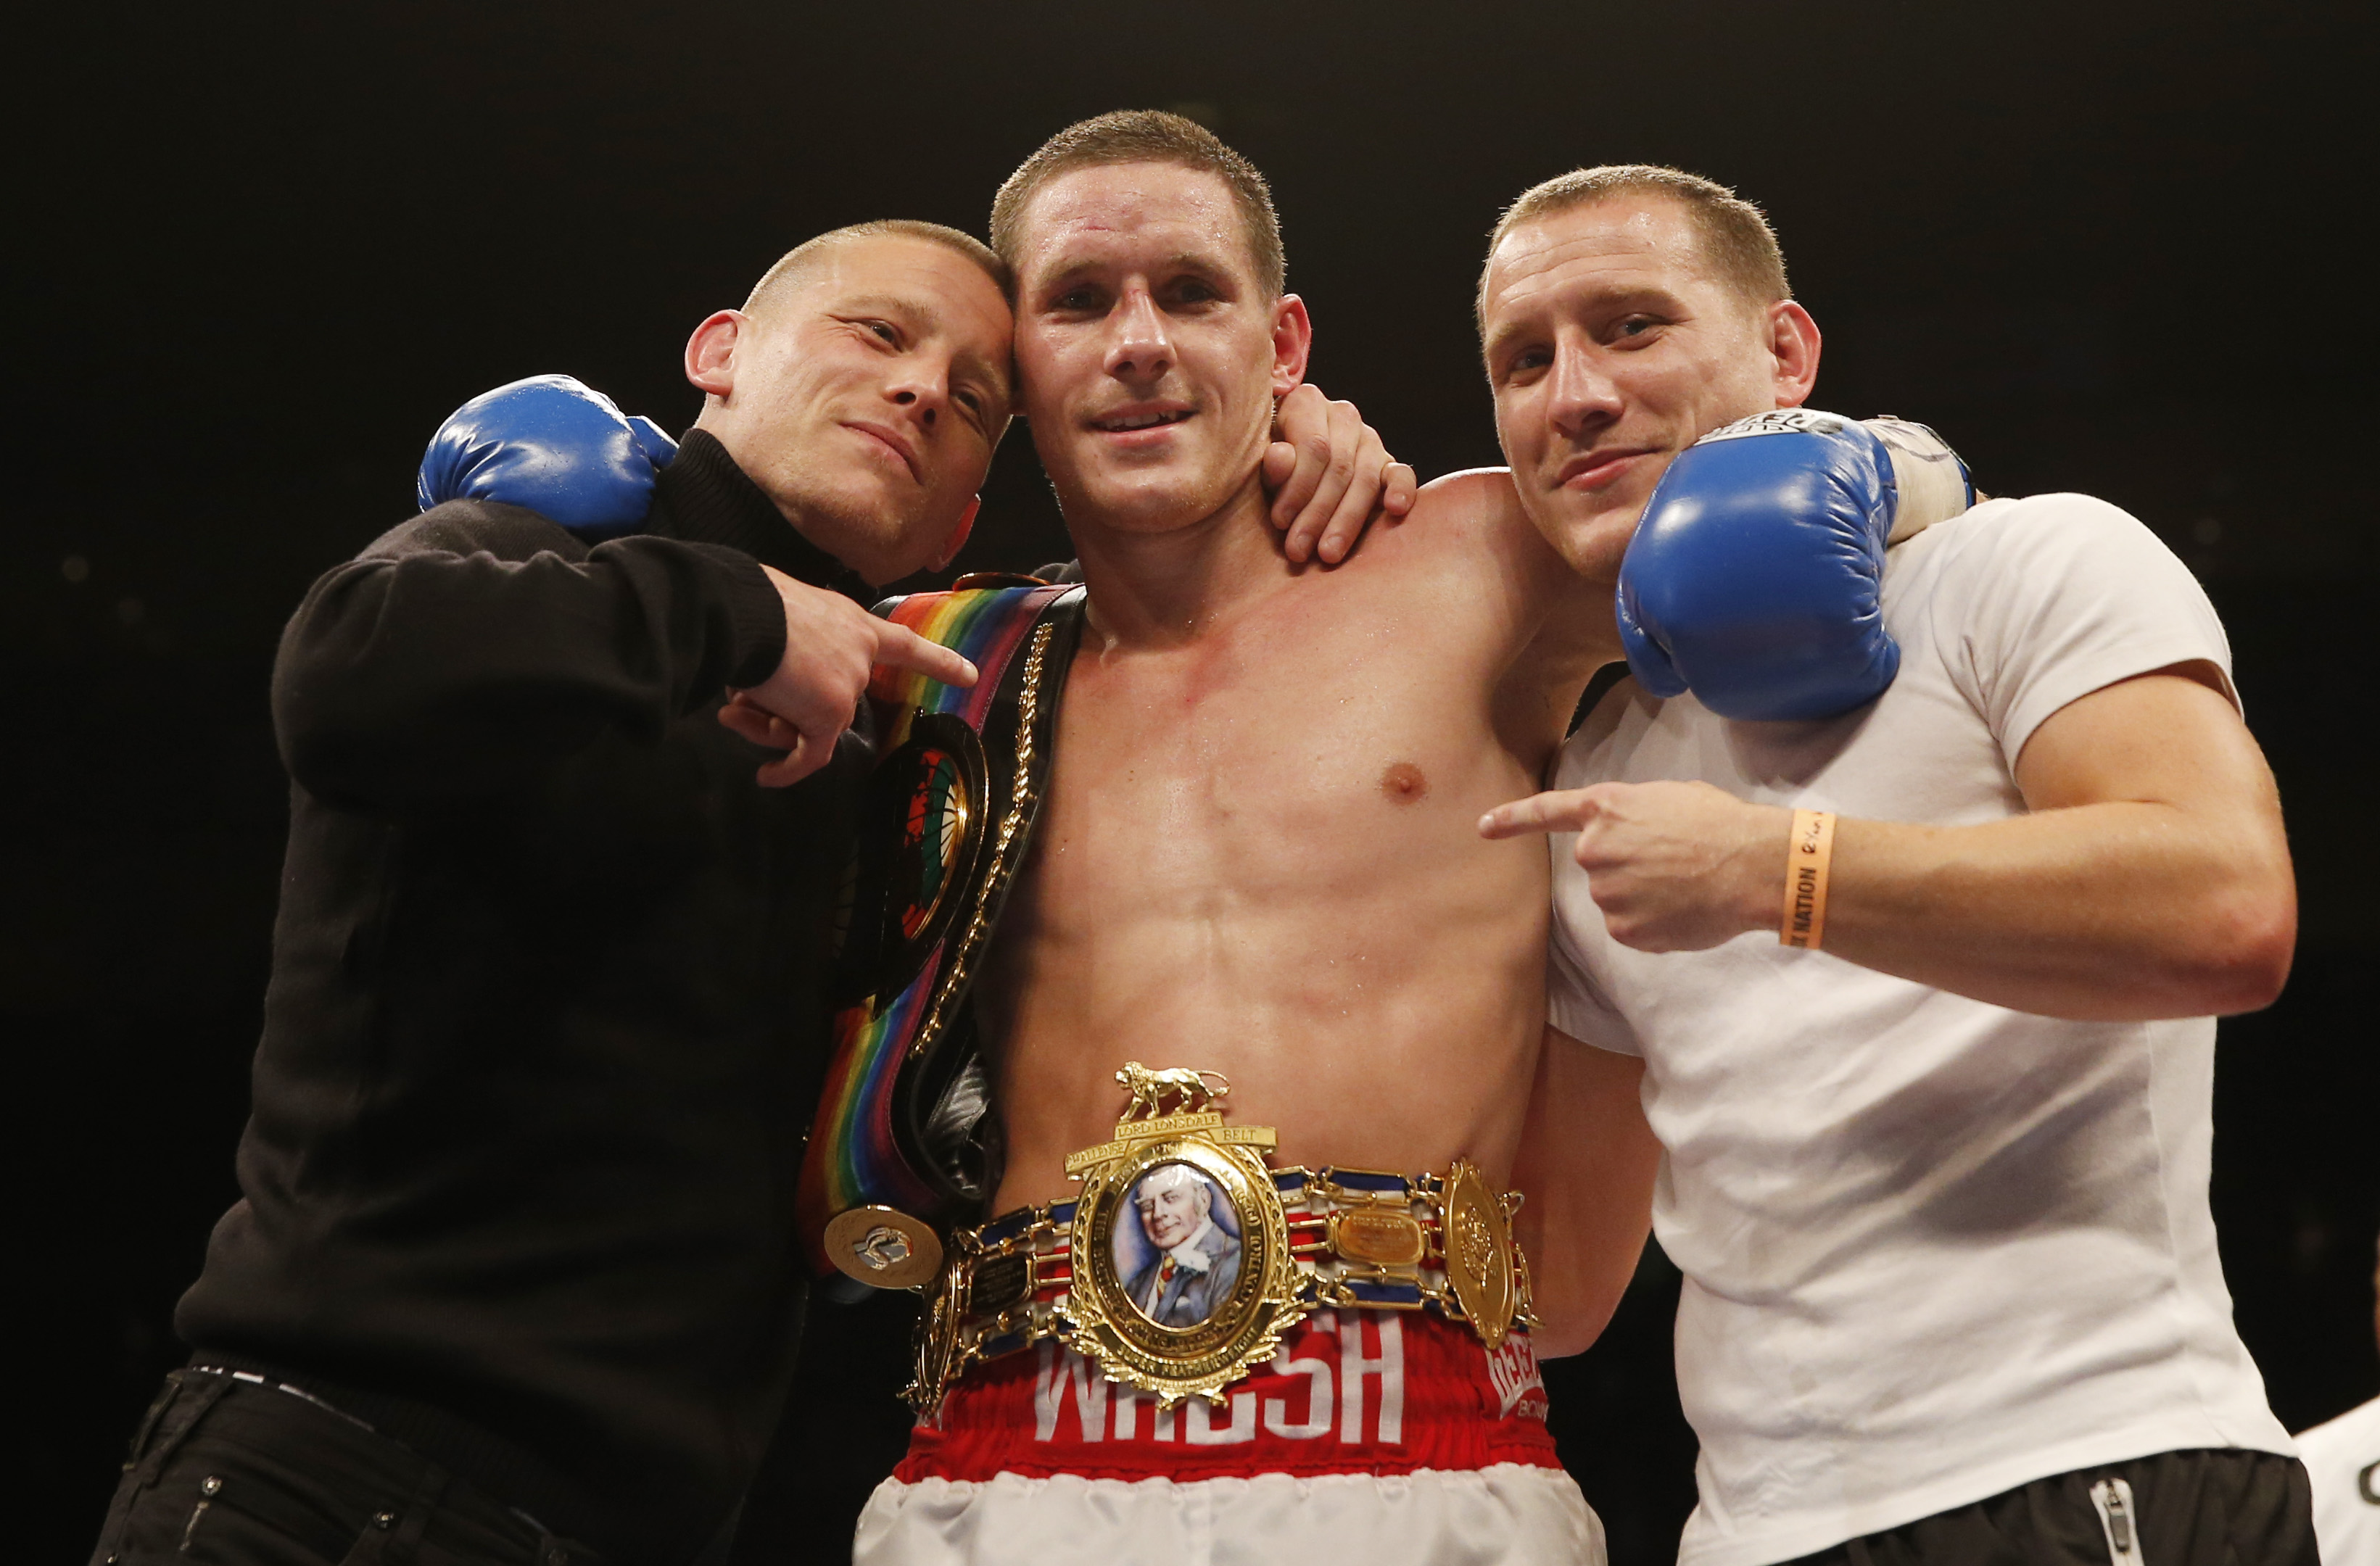 Boxing - Liam Walsh v Joe Murray British & Commonwealth Super-Featherweight Title's - O2 Arena, London - 28/2/15 Liam Walsh celebrates victory Mandatory Credit: Action Images / Peter Cziborra EDITORIAL USE ONLY.